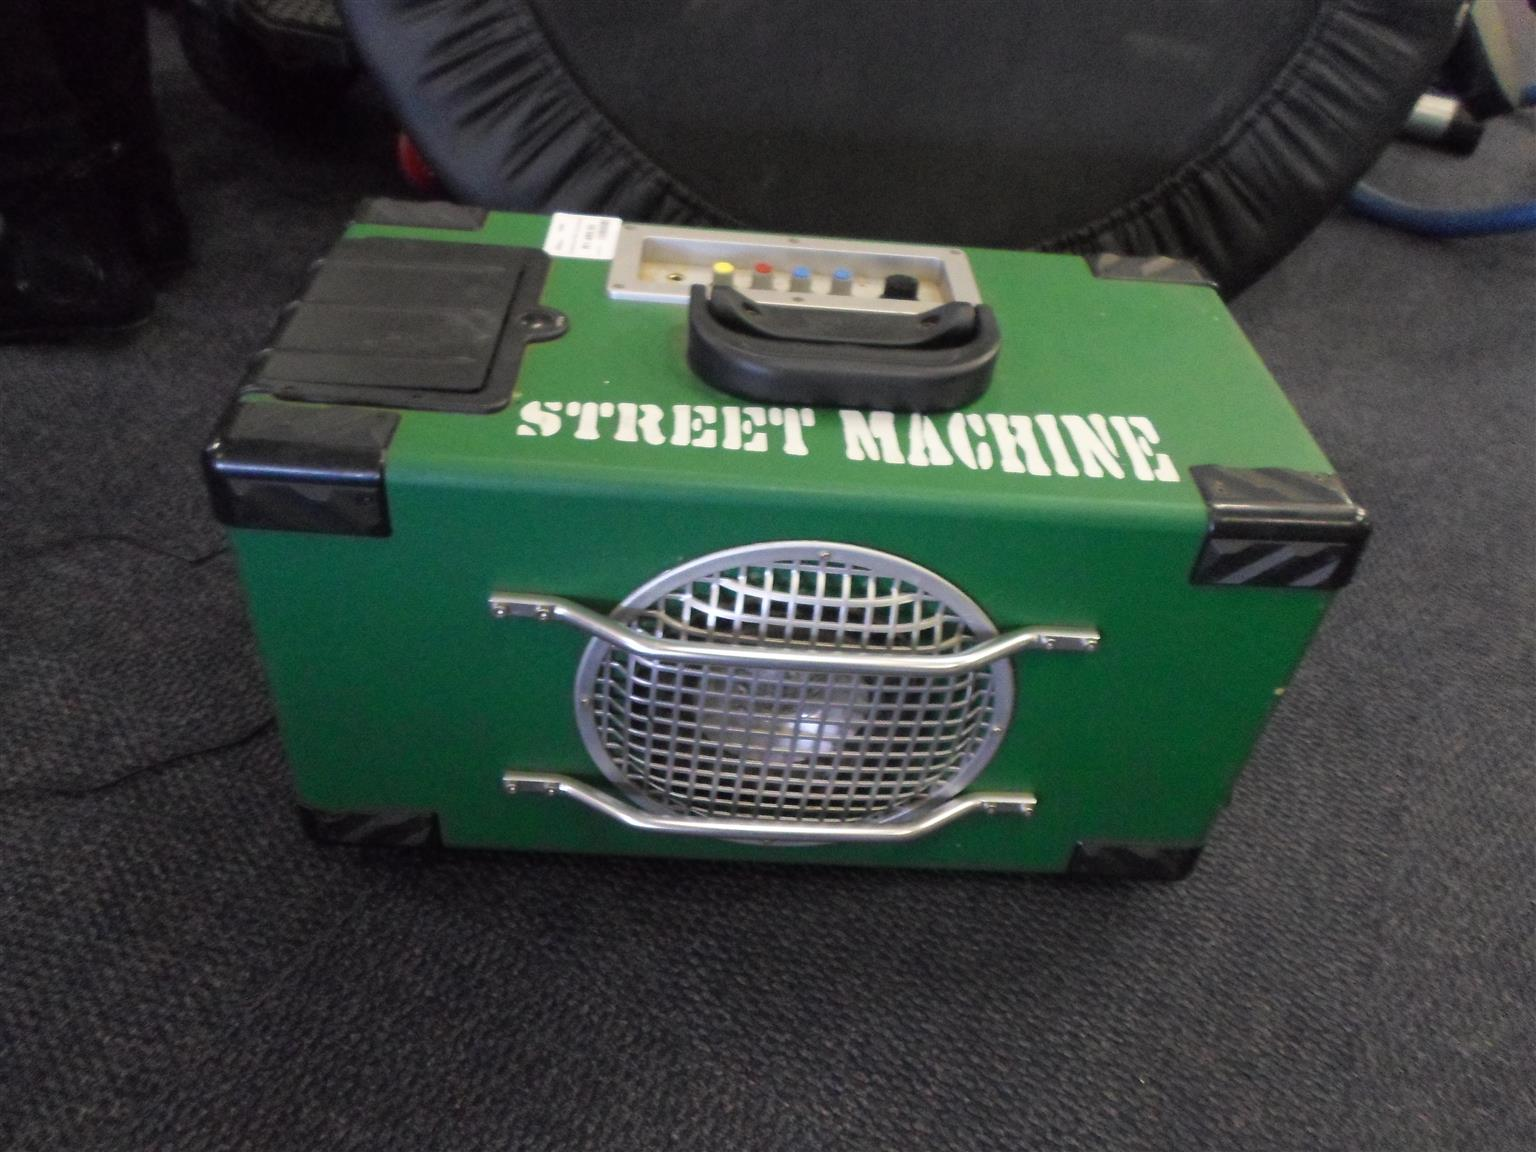 Street Machine Boom Box